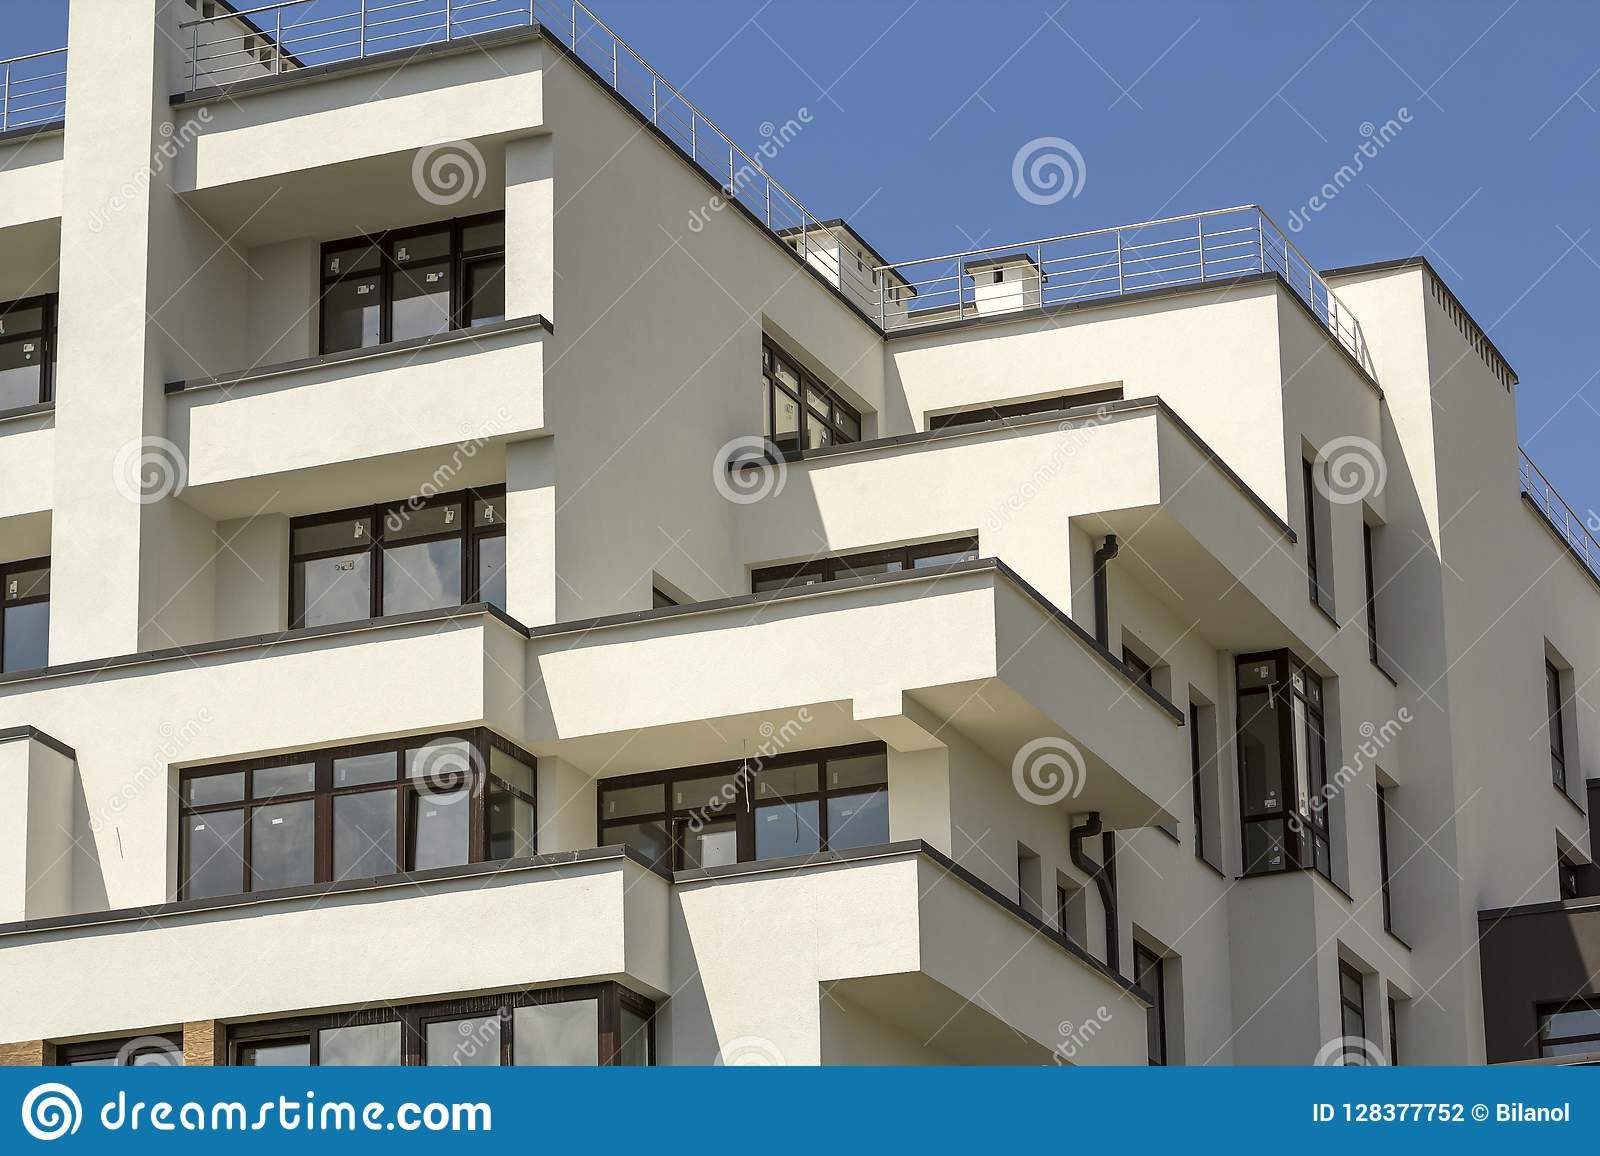 New Apartment Building With Terraced Balconies Shiny Windows And